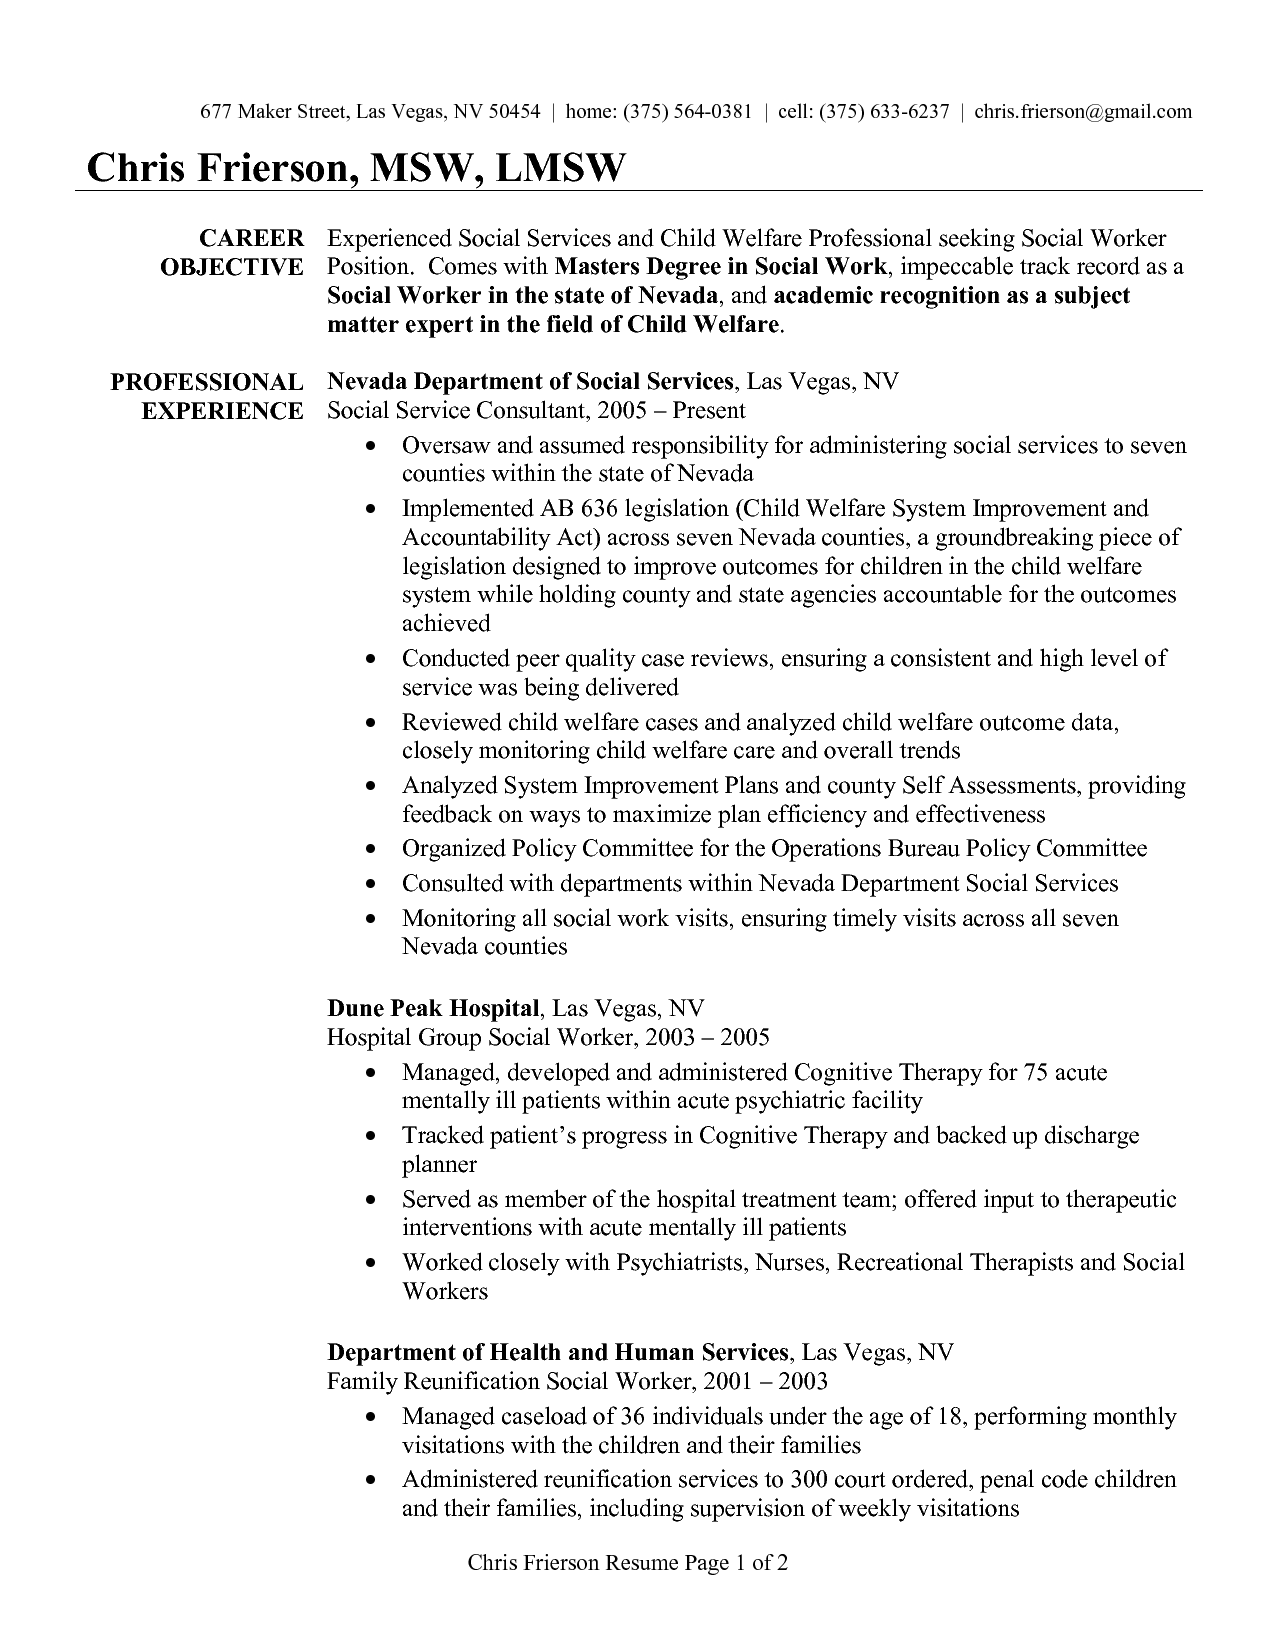 Resume Objective Statement For Social Services